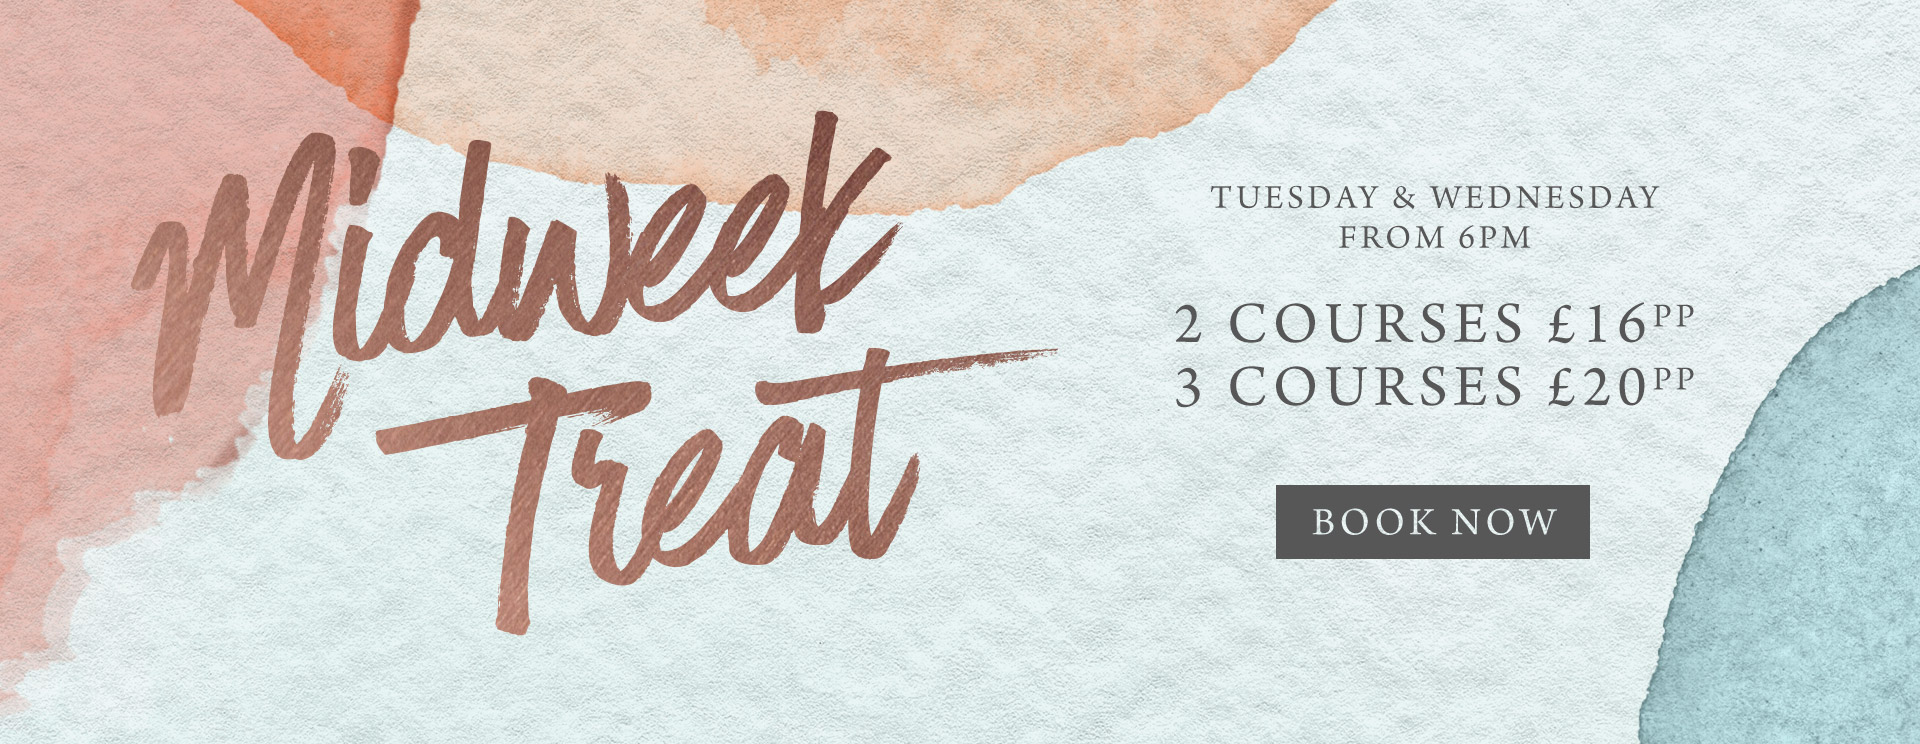 Midweek treat at The Victoria - Book now